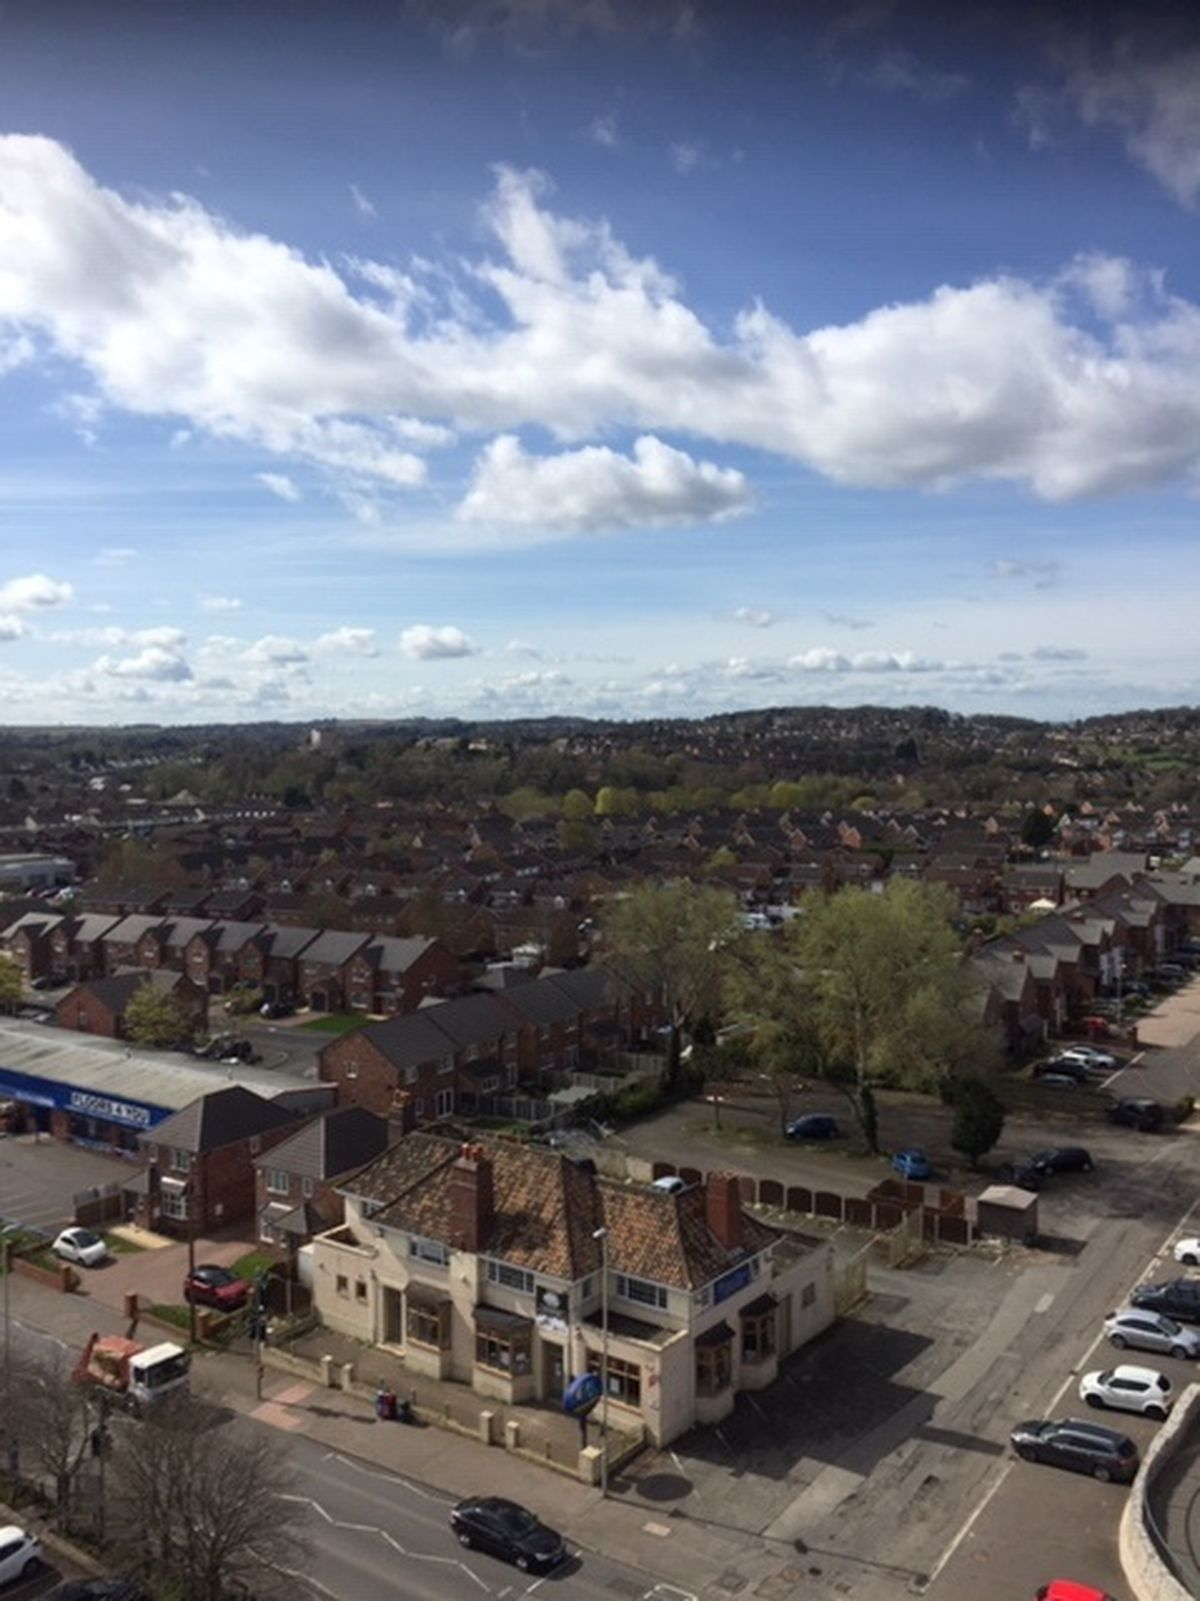 Overlooking the High Street from the Red House Glass Cone